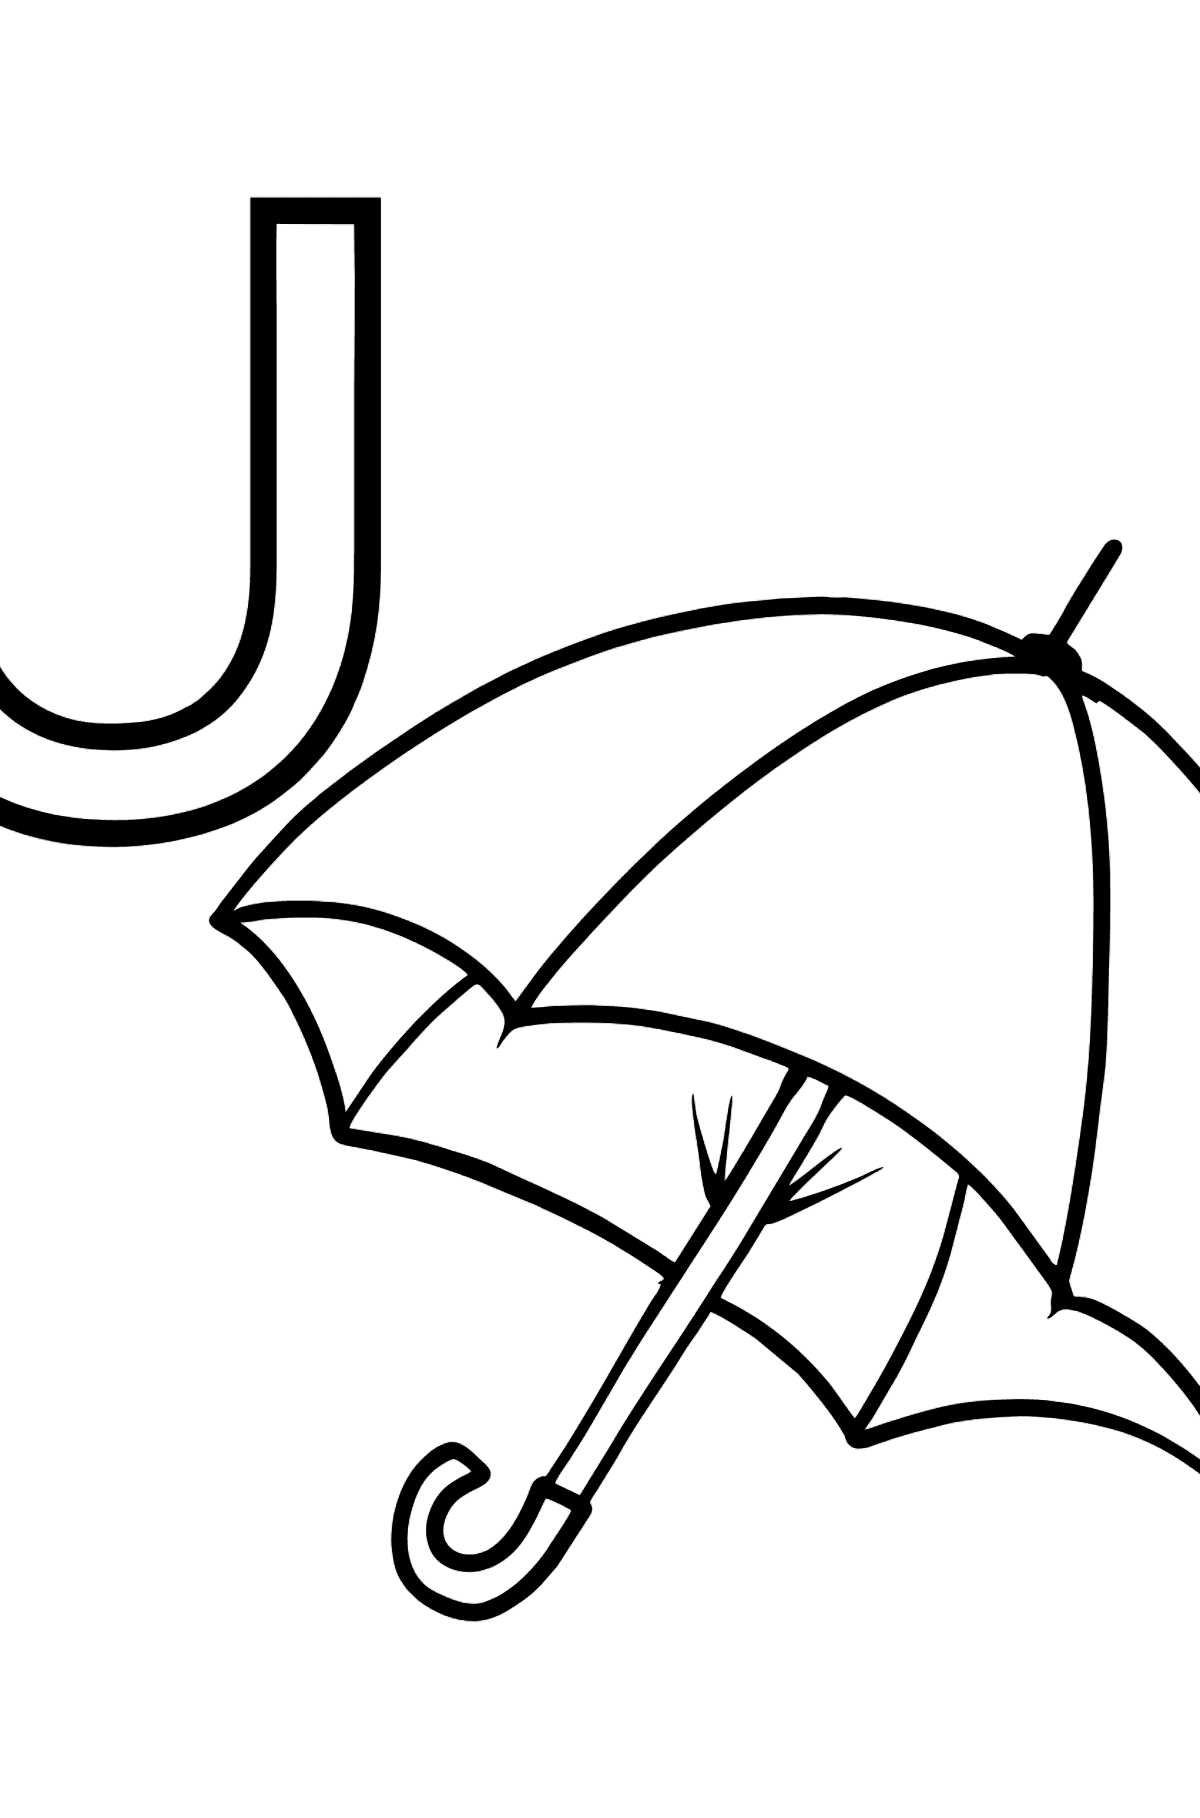 English Letter U coloring pages - UMBRELLA - Coloring Pages for Kids